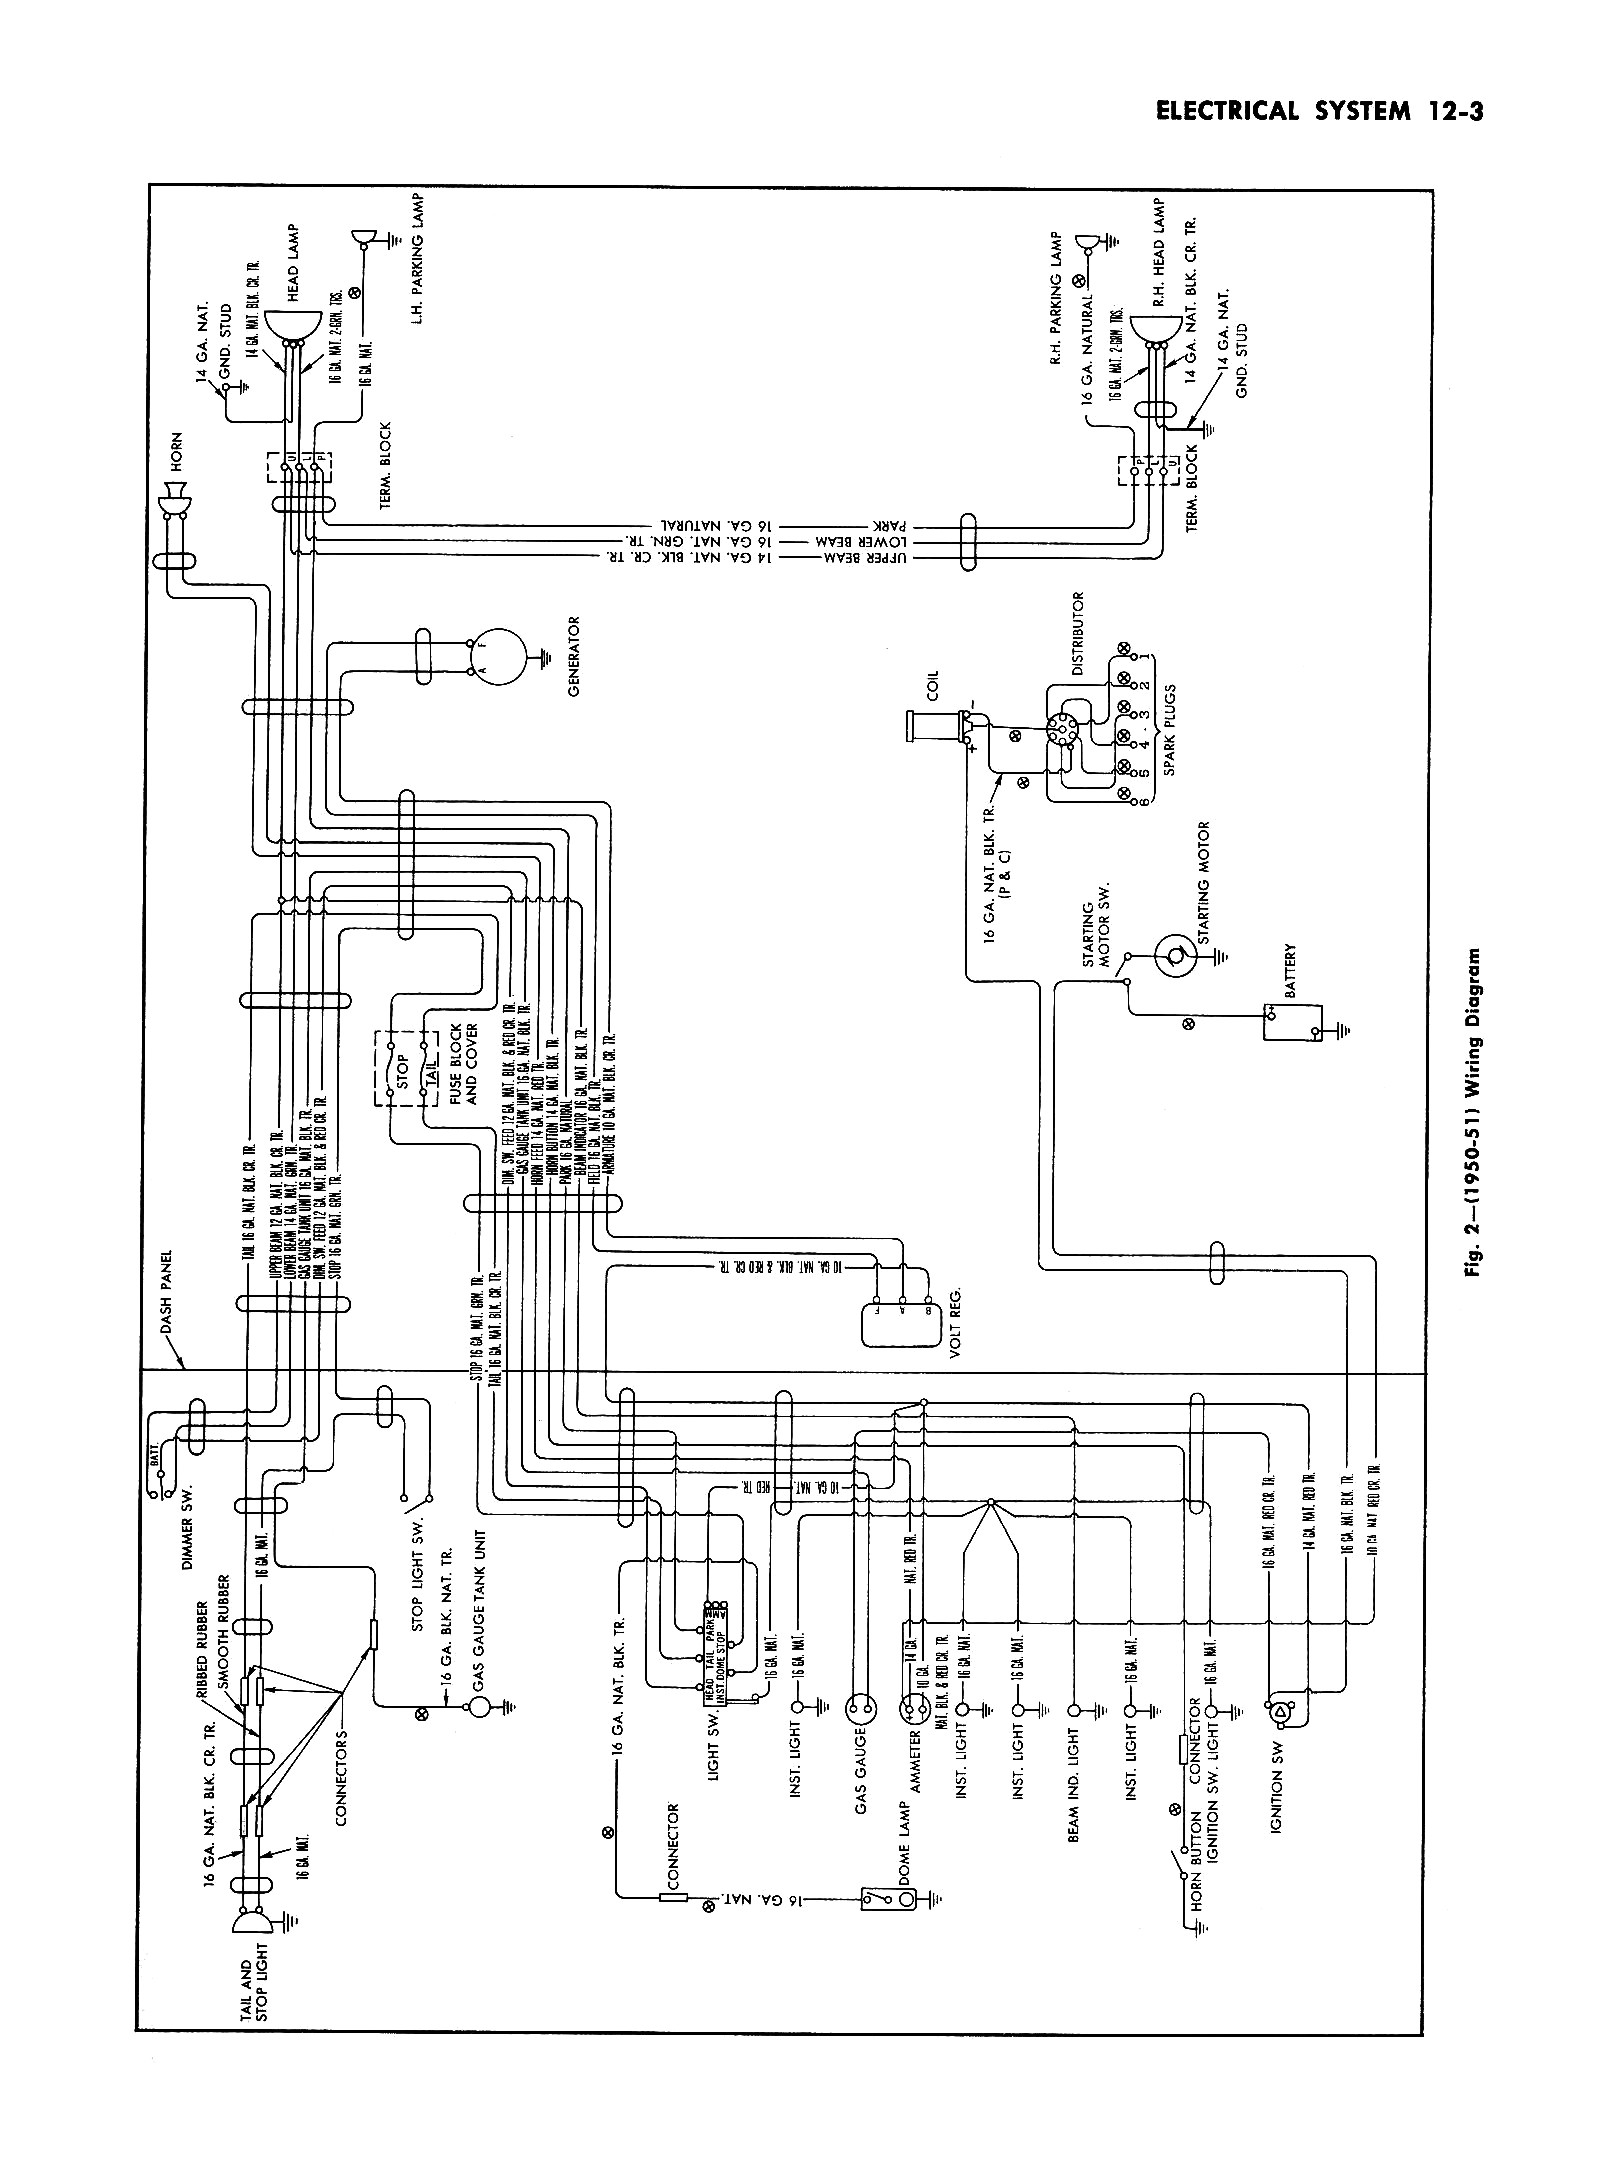 1951 olds wiring diagram get free image about wiring diagram wire rh linxglobal co 1995 Oldsmobile Wiring Diagrams 1969 Oldsmobile 442 Vacuum Hose Diagram